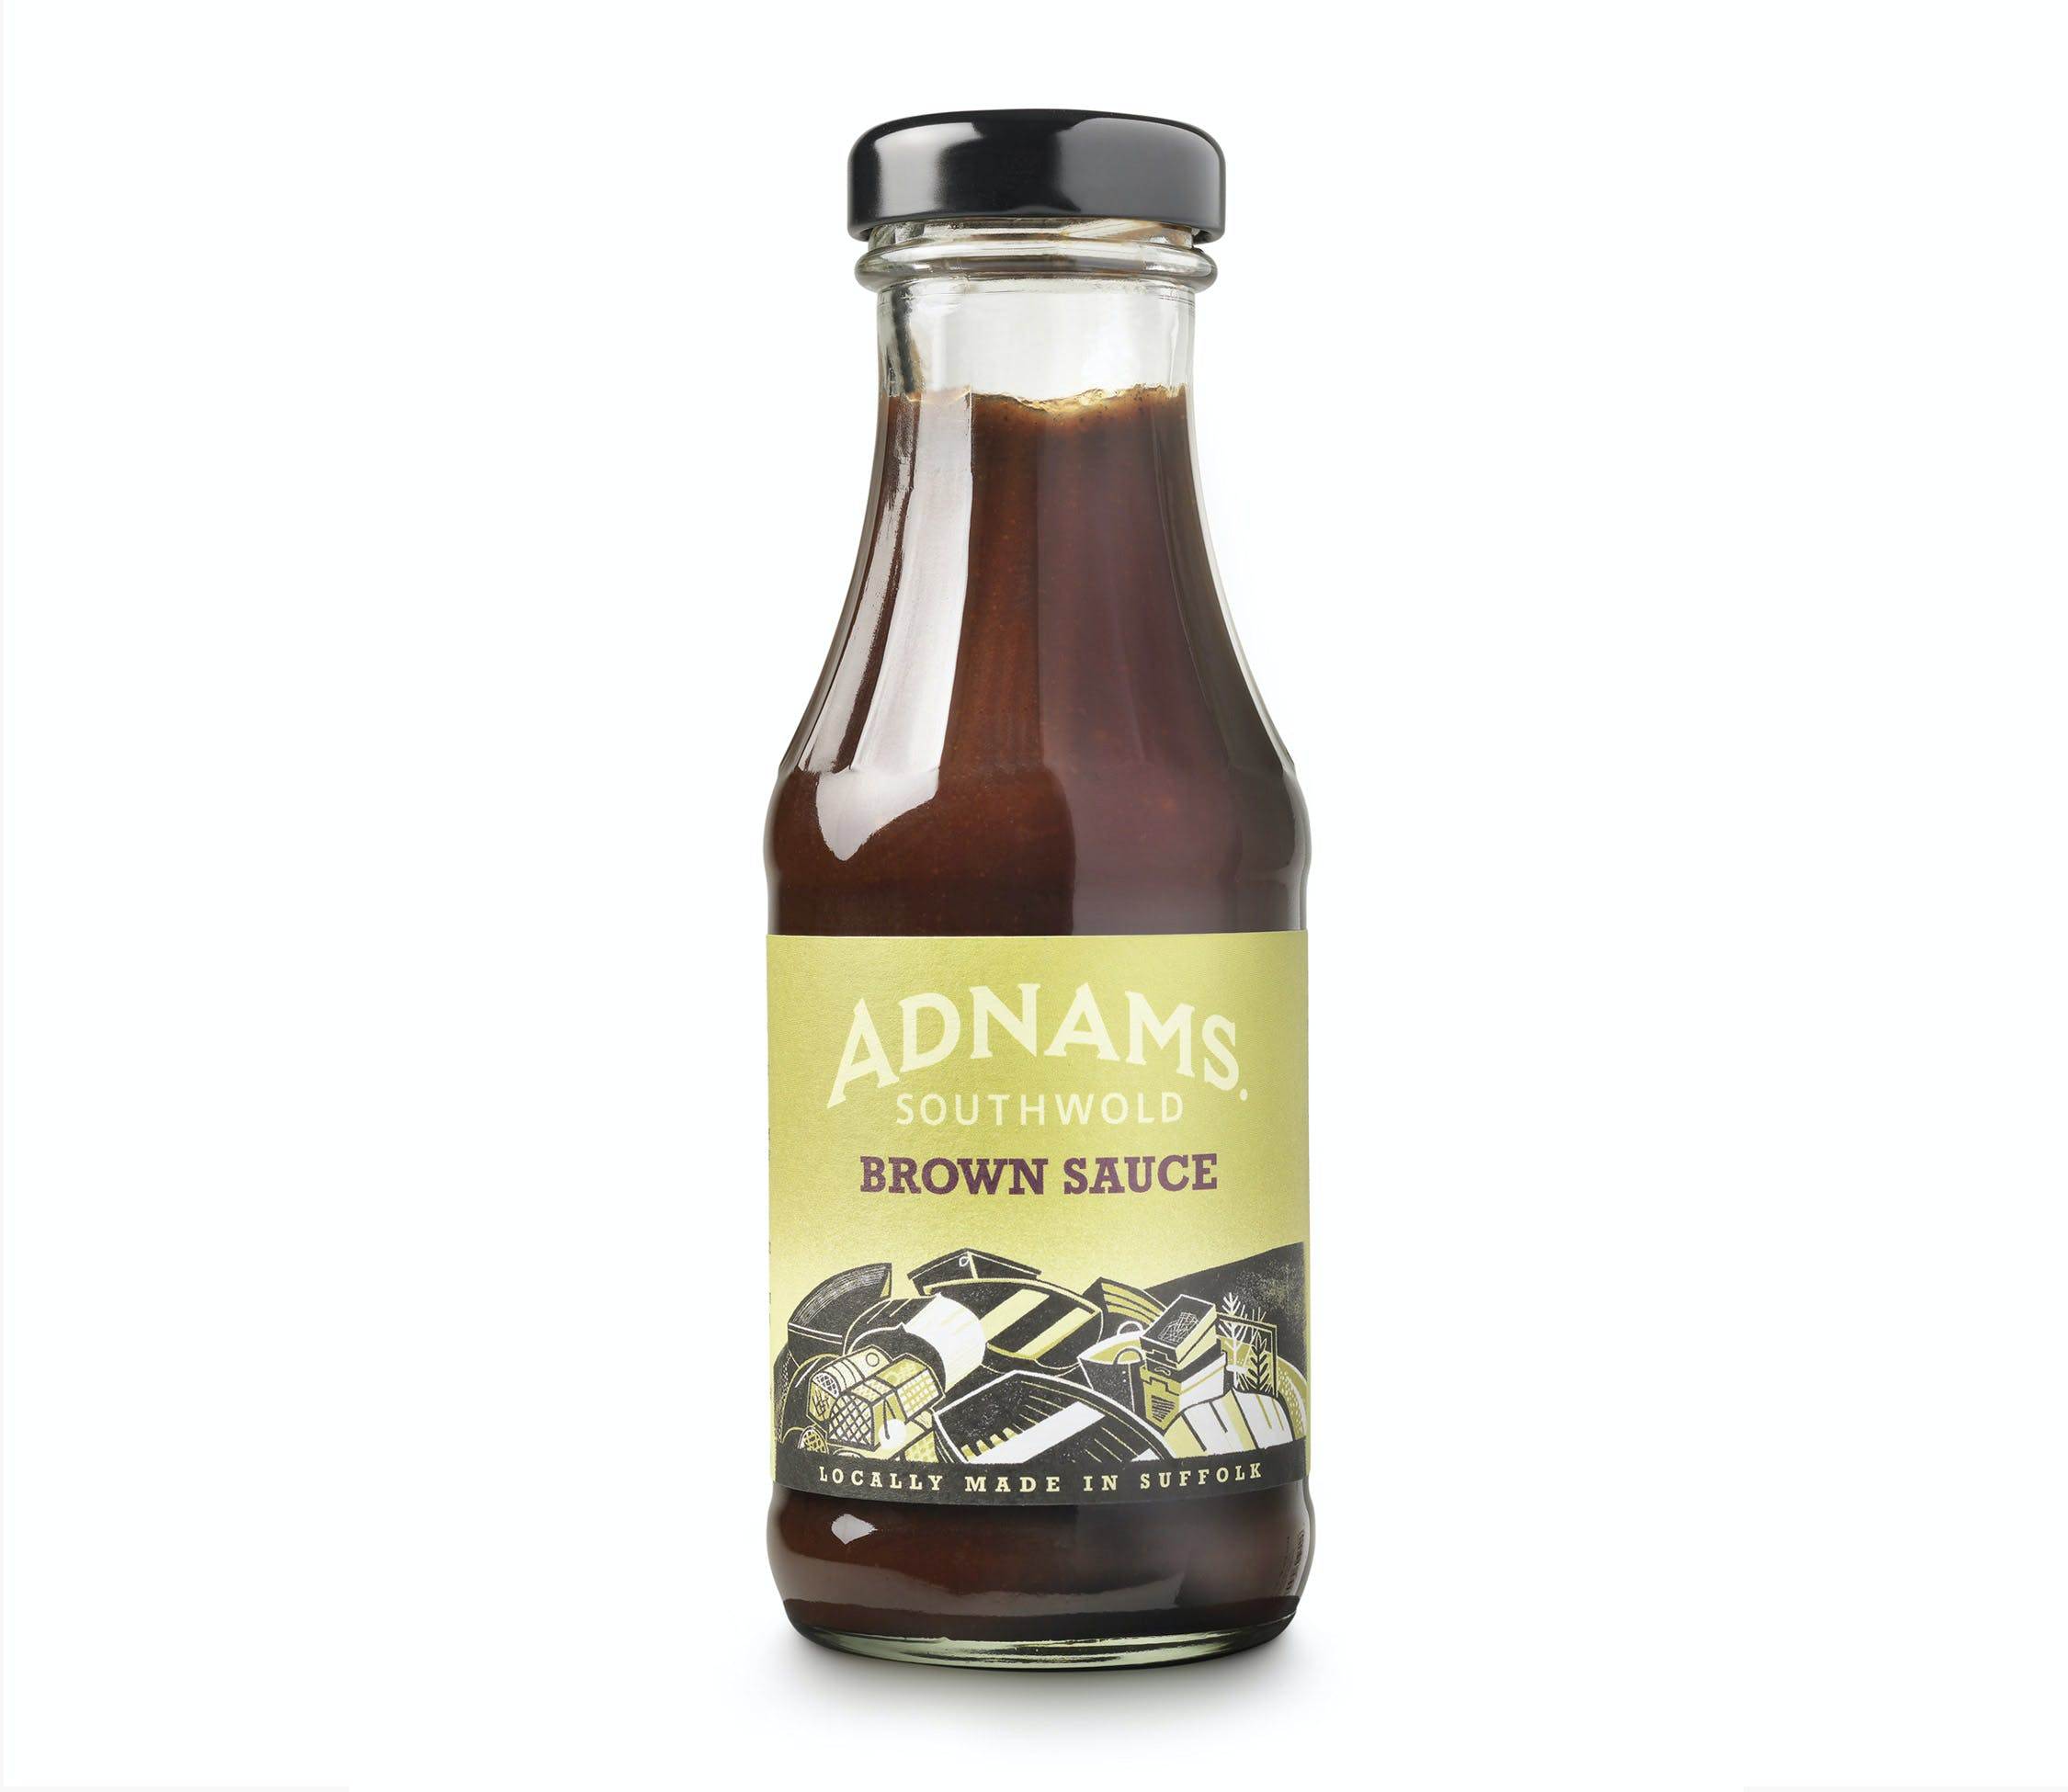 Best Adnams Brown Sauce Stockists